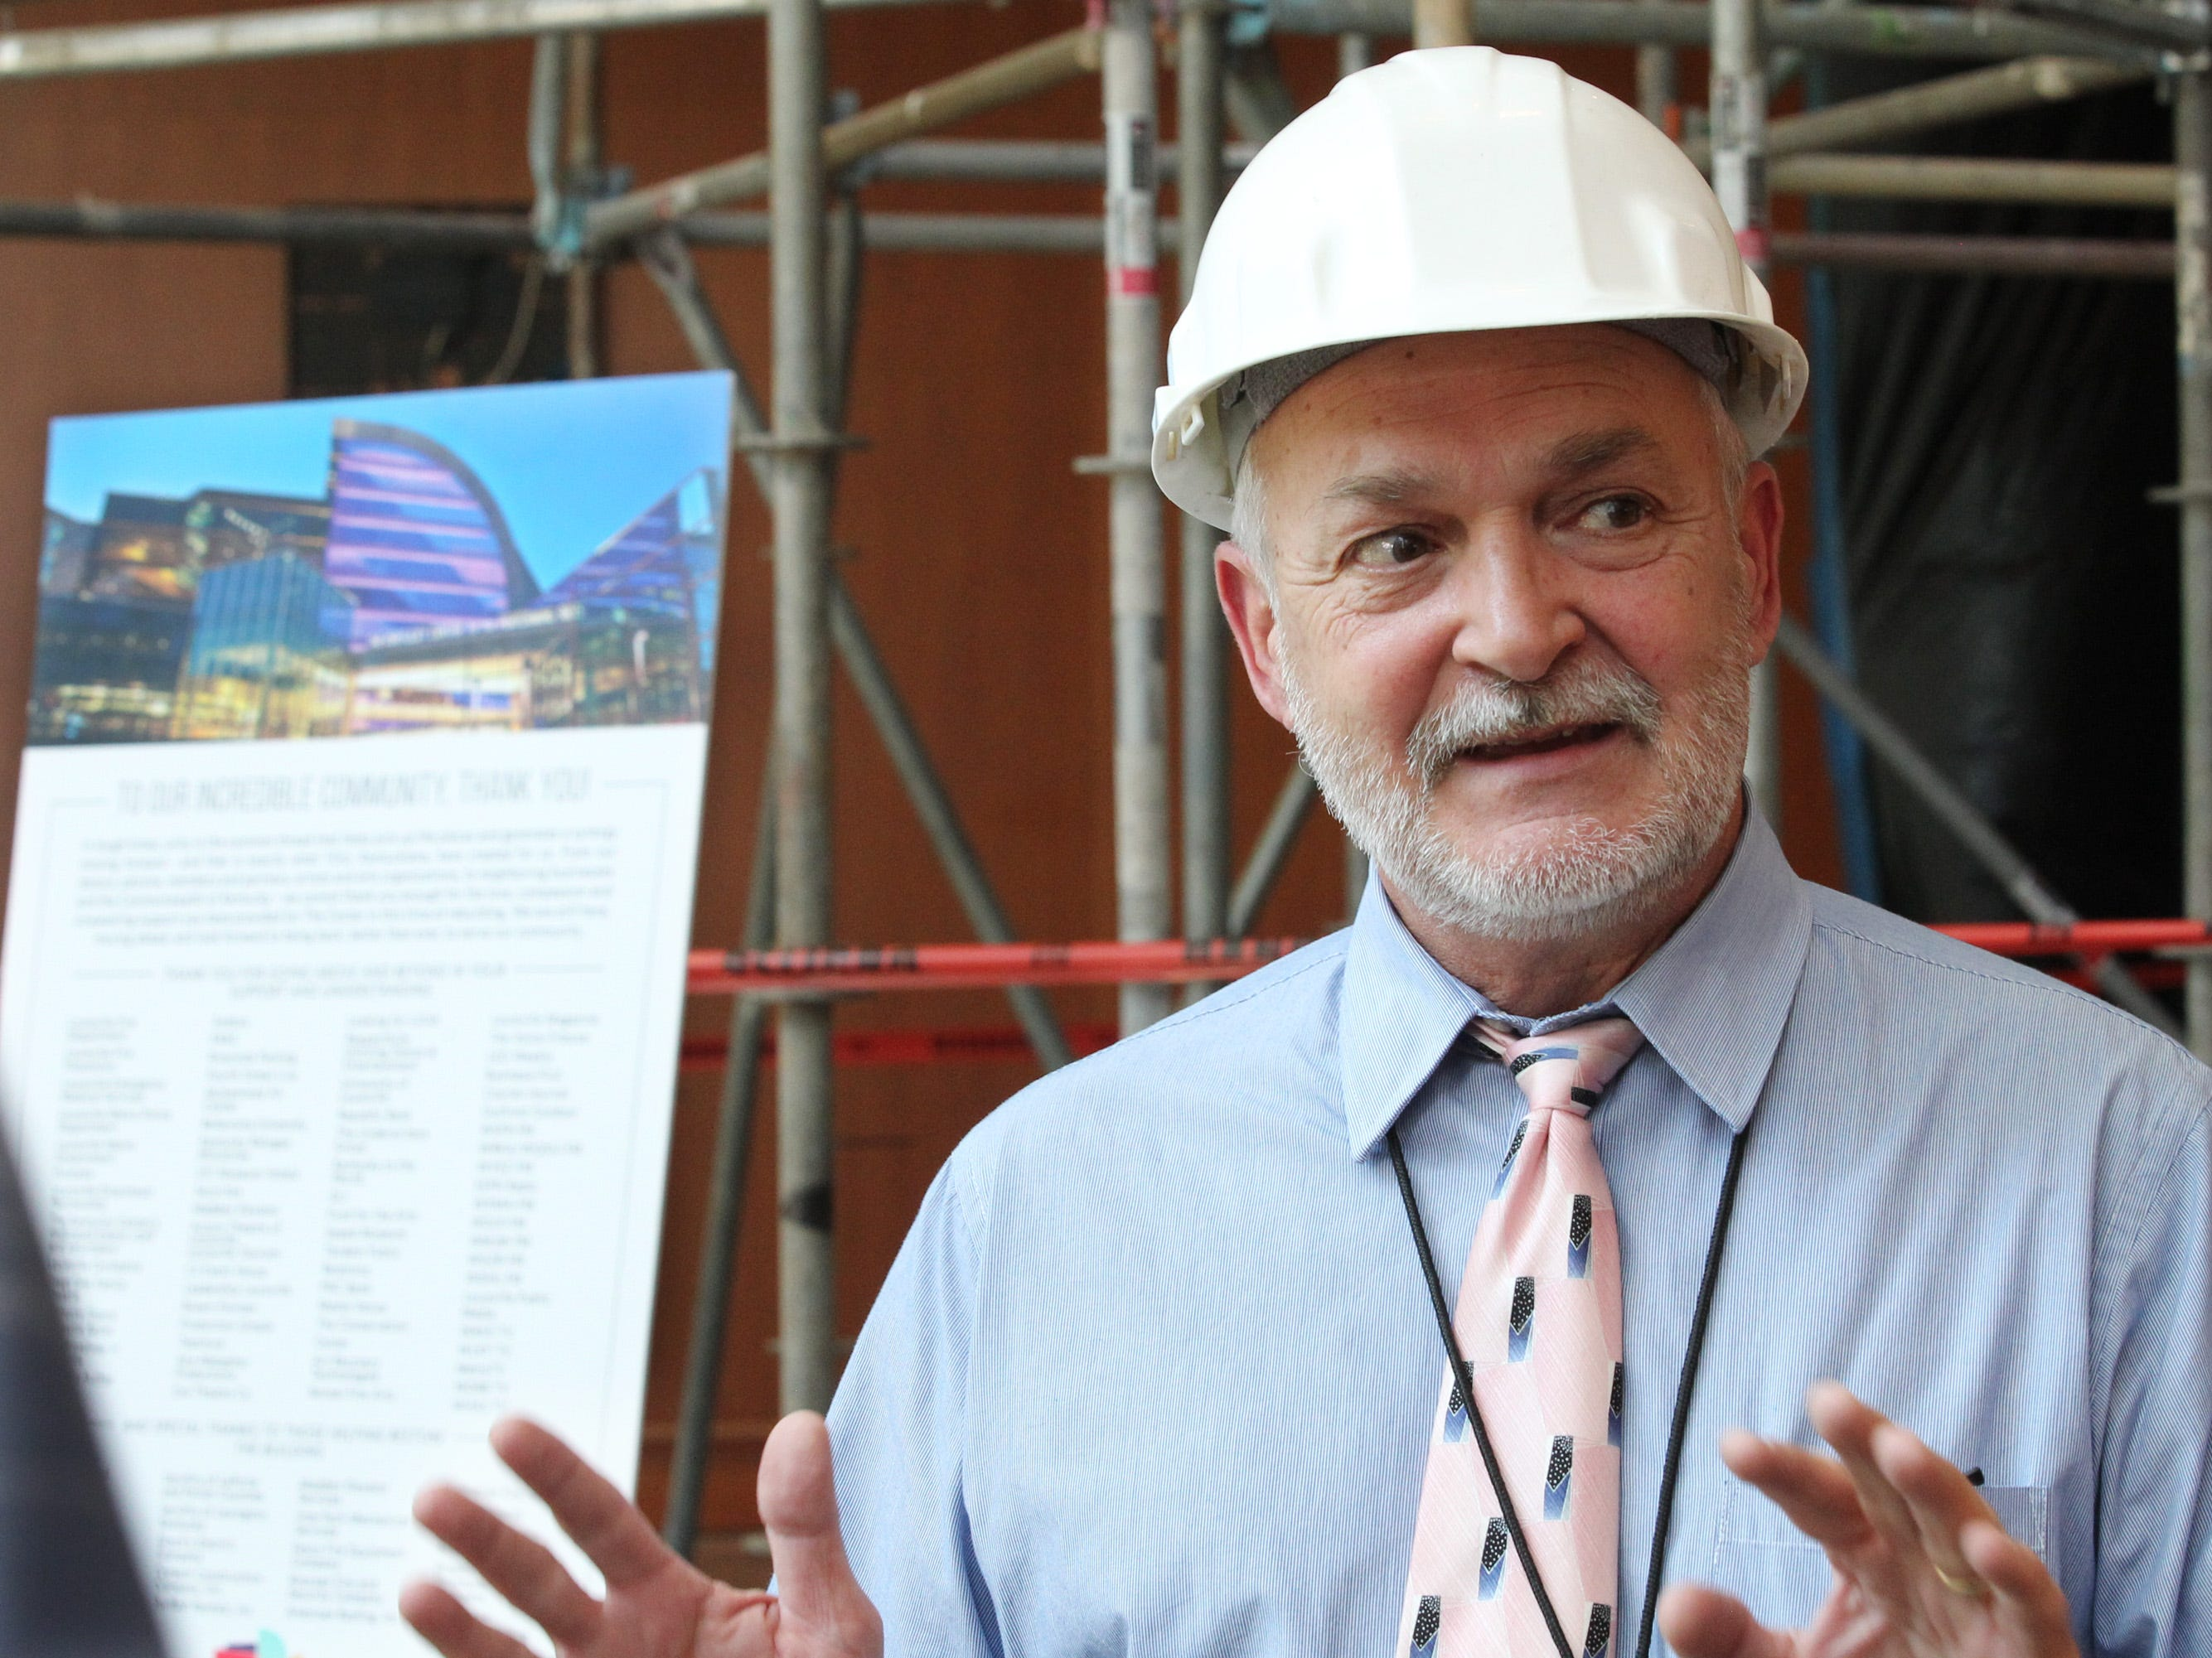 Kentucky Finance and Administration architect Andrew Casebier addresses the media during a press conference  on the condition of Kentucky Center for the Arts in Louisville, Kentucky.    July 26, 2018